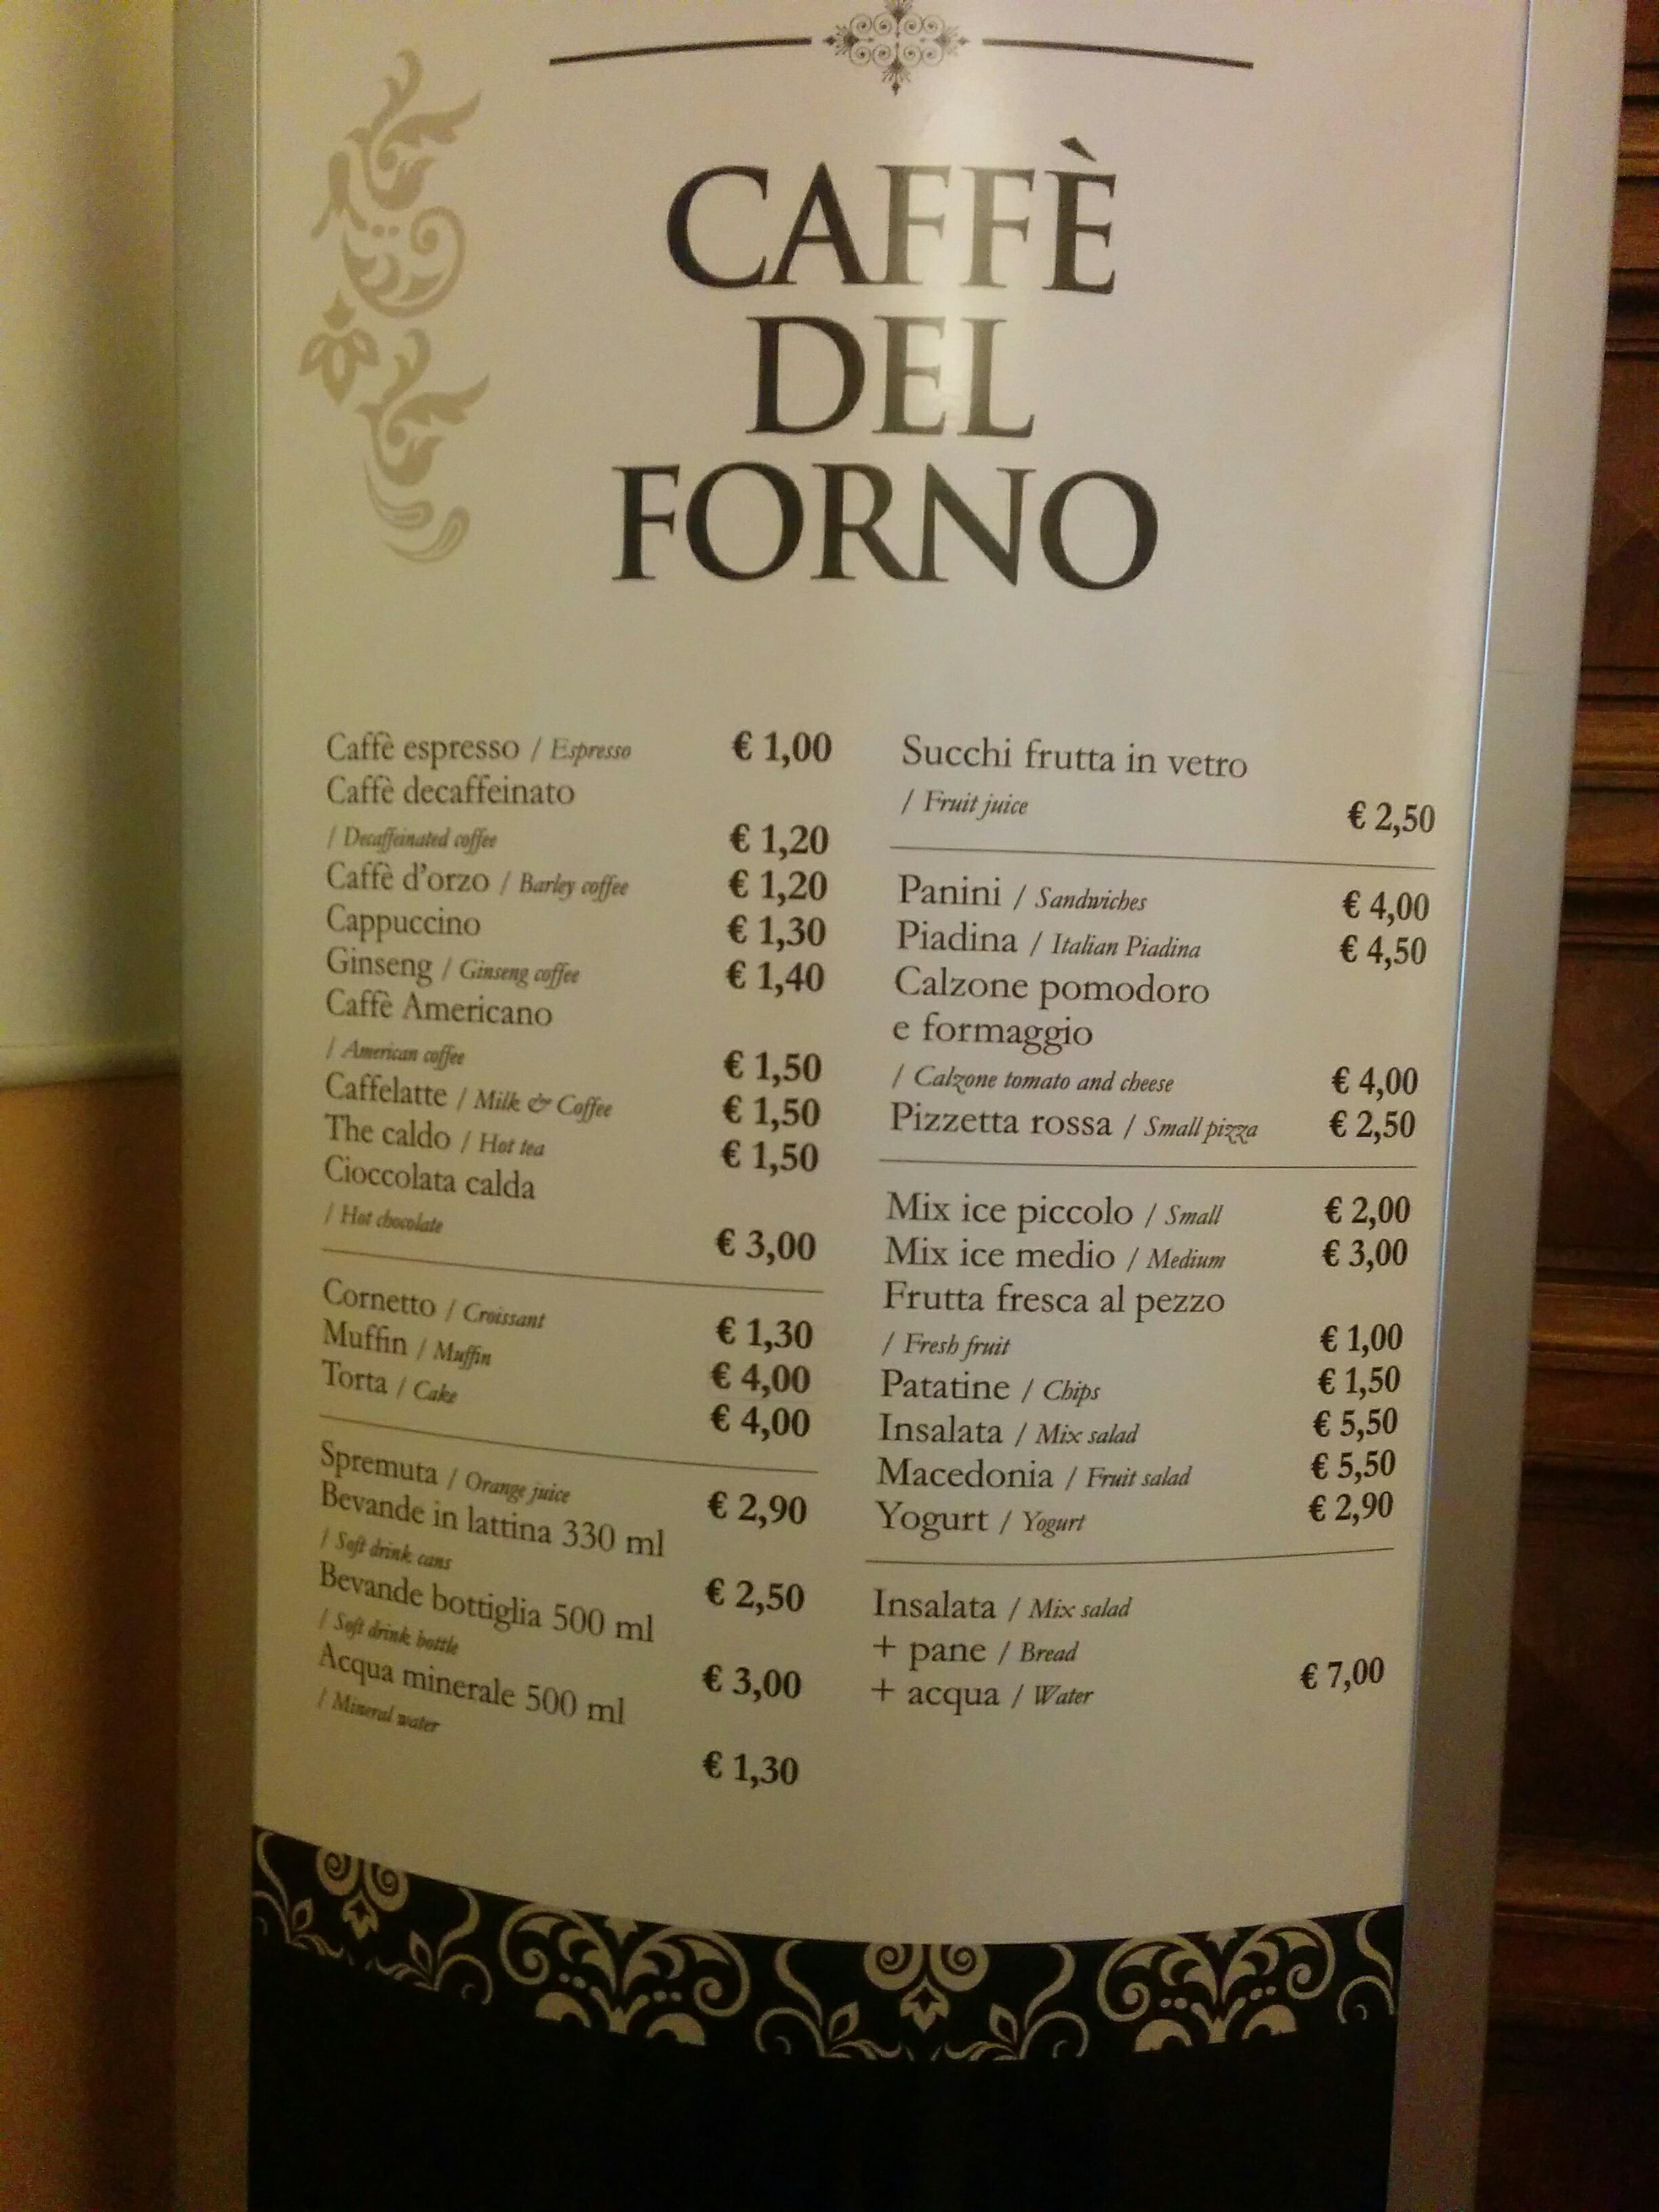 I expected the Vatican café to cost an arm and a leg, but compared to Zürich these prices were a pleasant surprise!